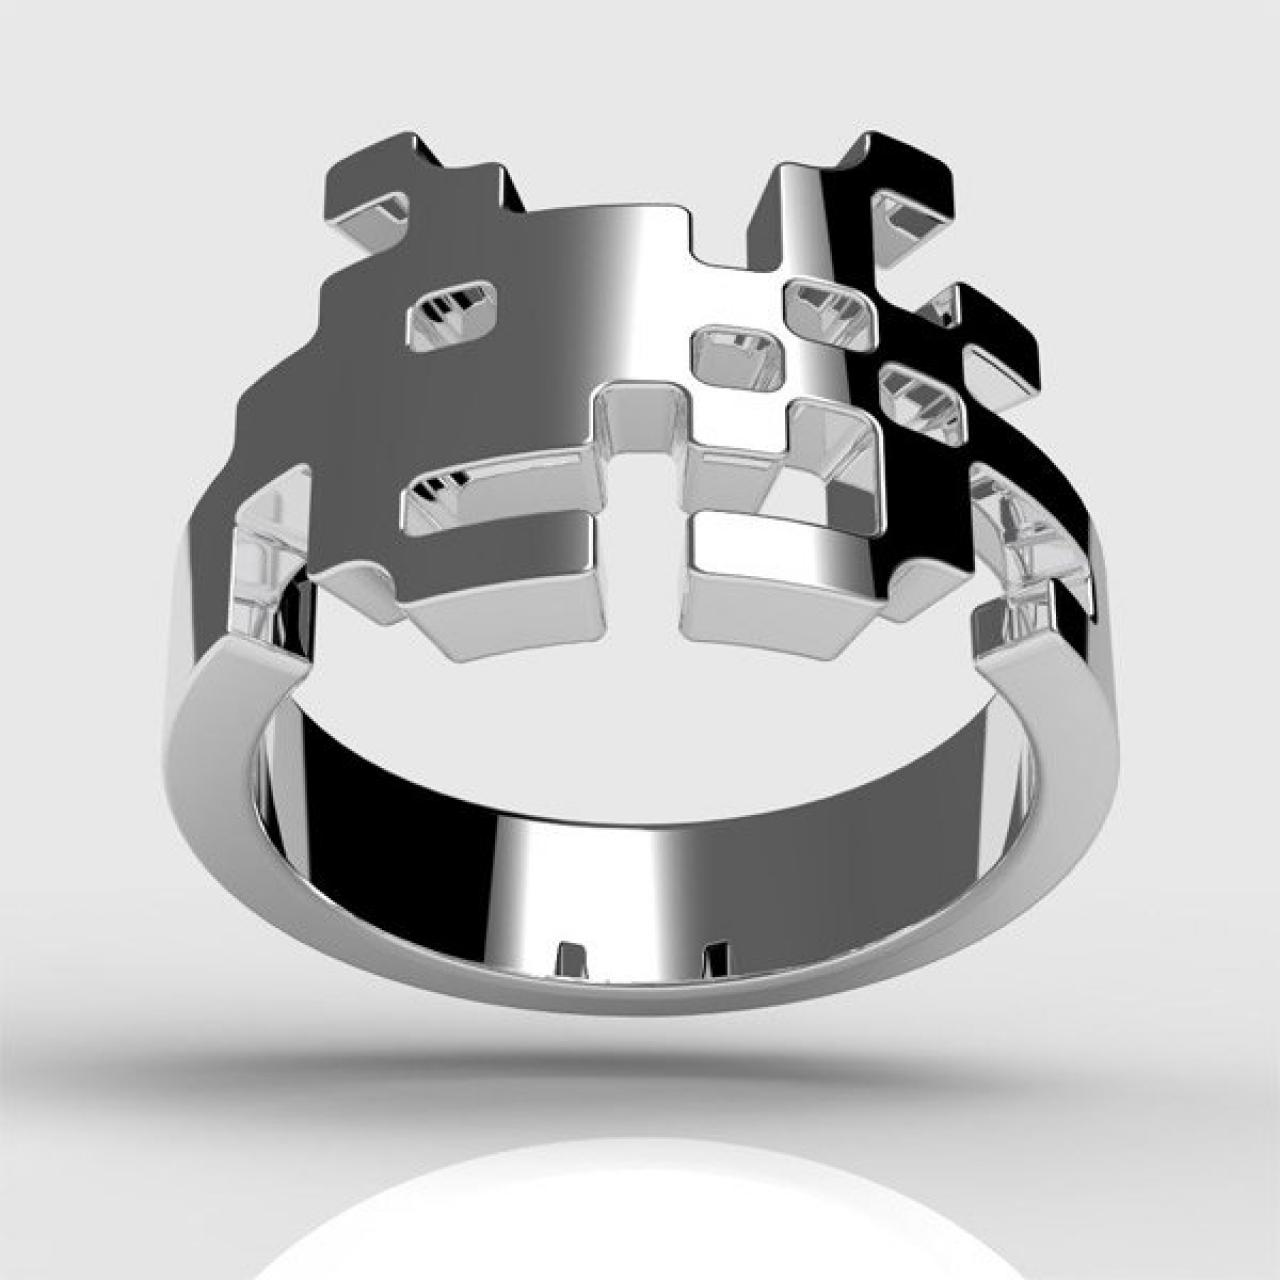 Celebrate Geek Love With These 23 Awesome Scifi Wedding. Ayala Wedding Rings. French Wedding Rings. Compassion Rings. Purple Heart Engagement Rings. Ridiculously Wedding Rings. Traditional Round Wedding Rings. Past Present Future Wedding Rings. Elaborate Wedding Rings